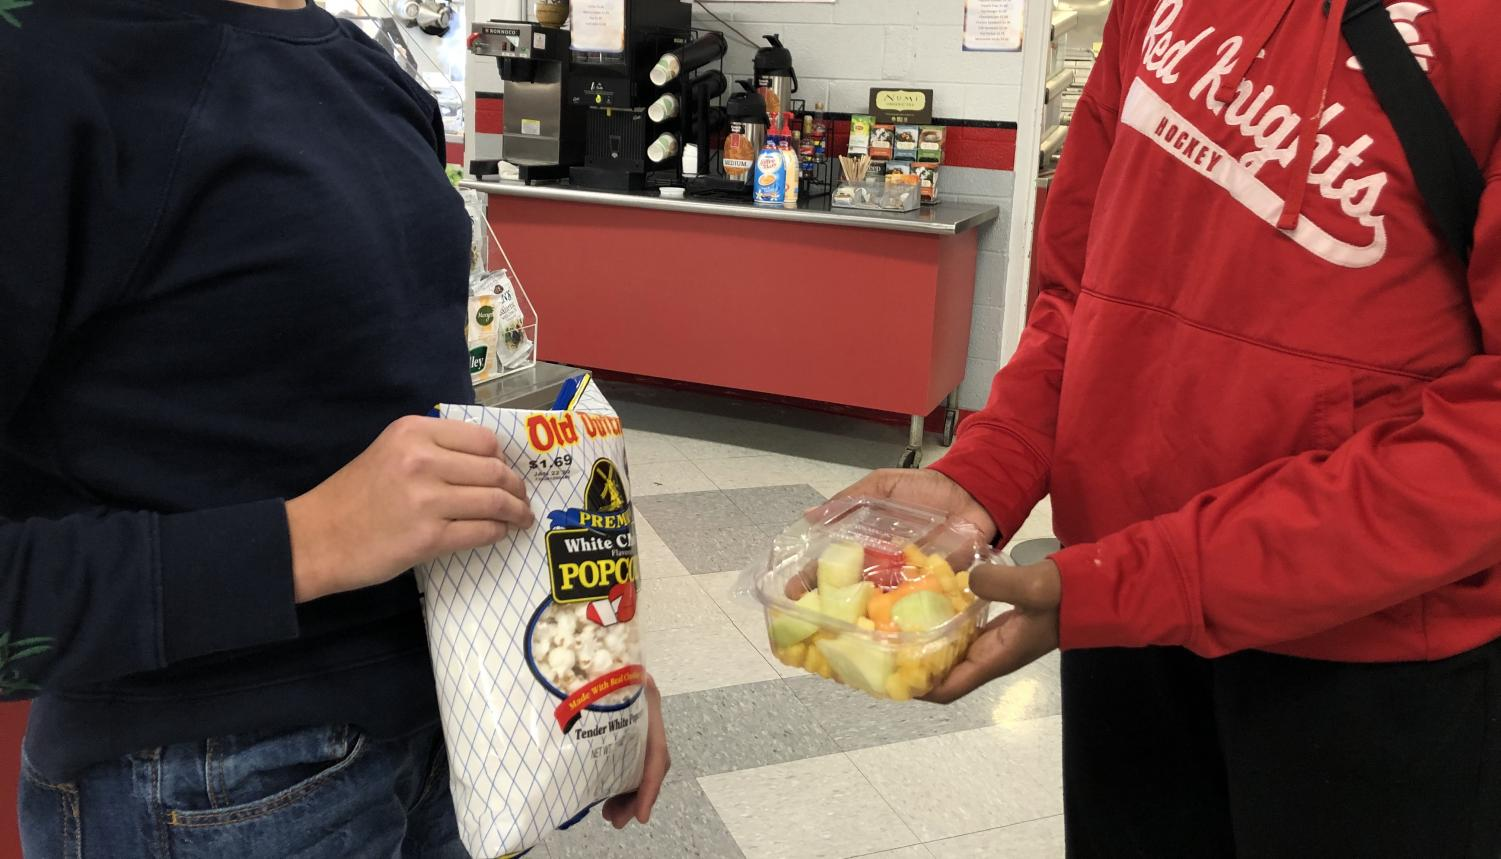 Students compare two different food options offered at Taher.